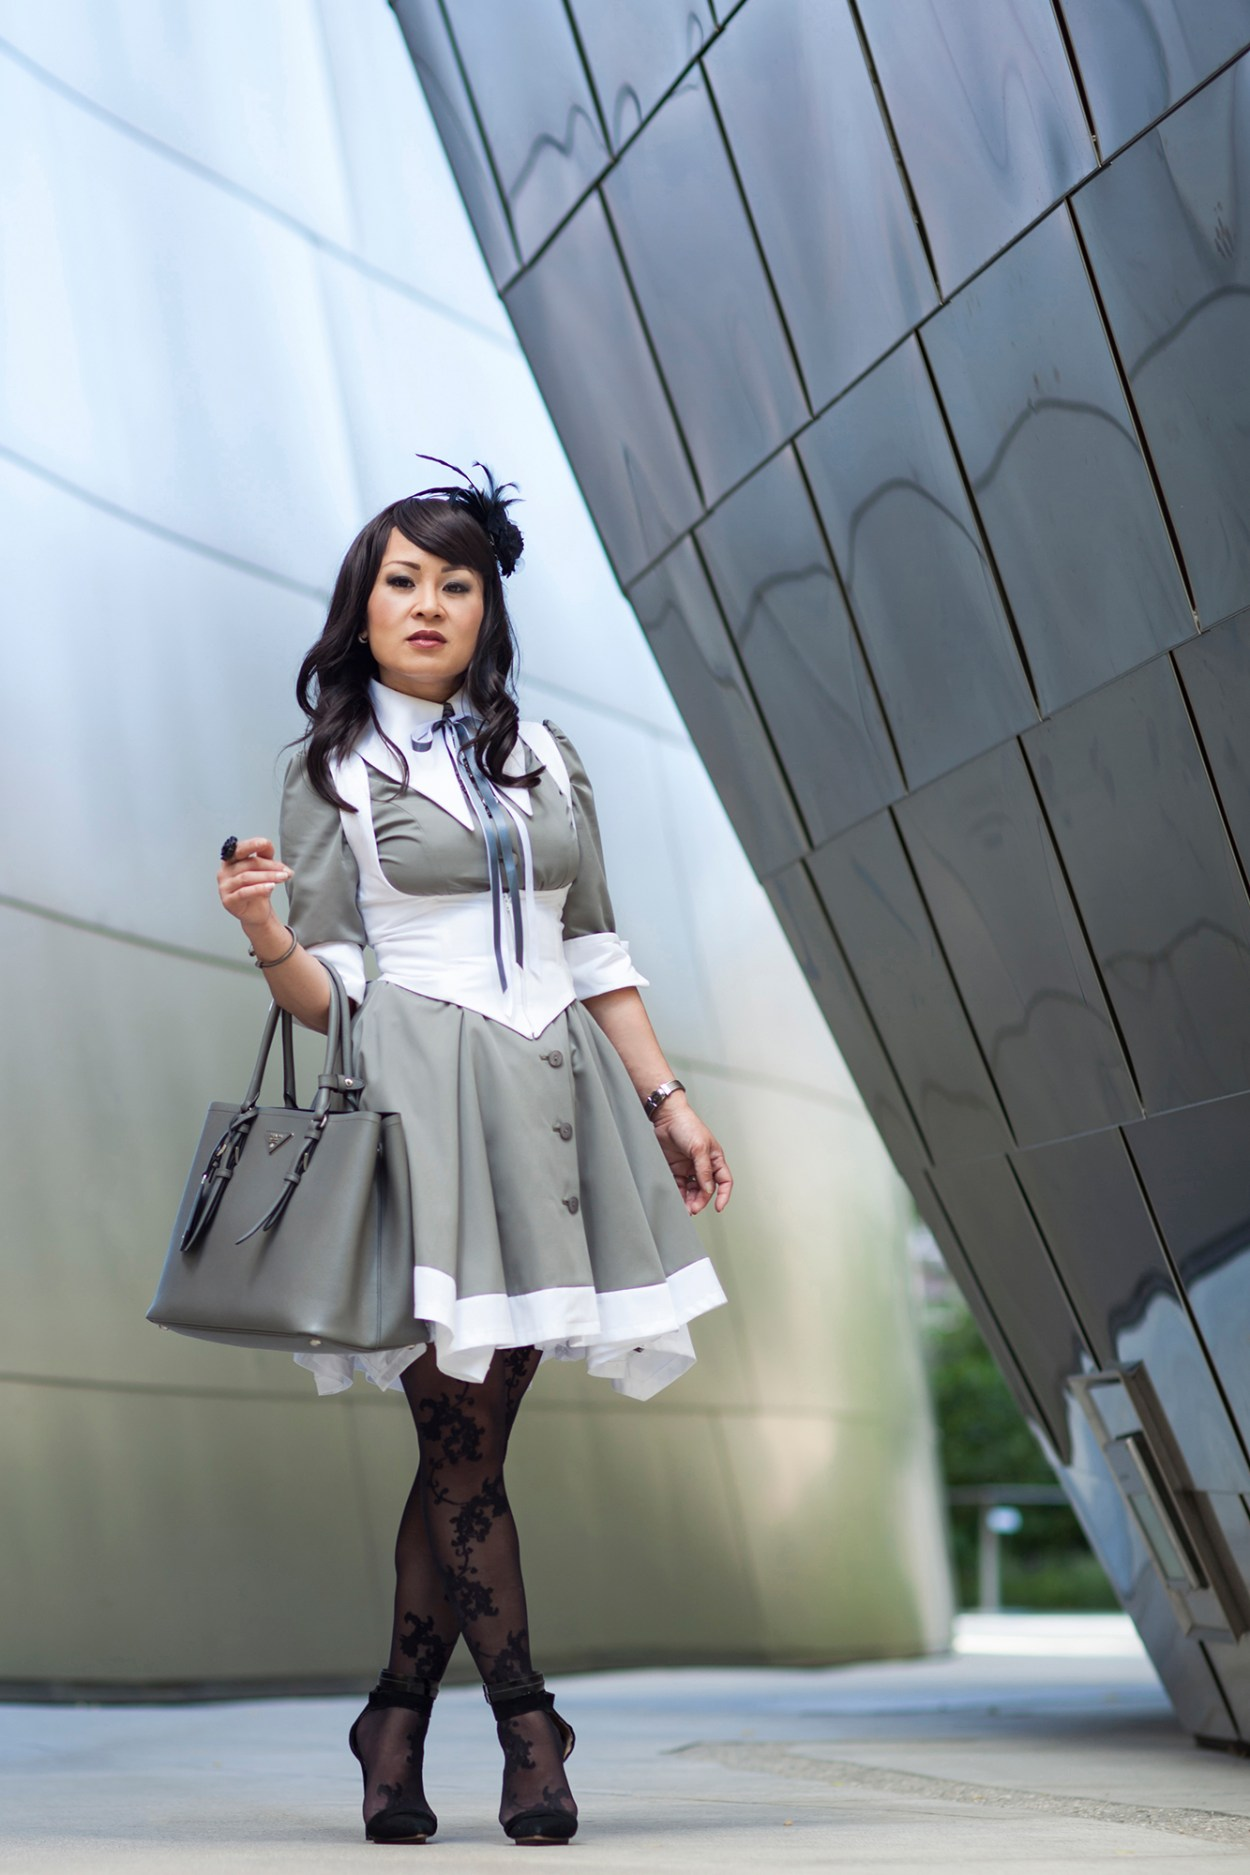 9-Atelier-BOZ-Carol-Neo-Dress-Female-Women-Fashion-Lolita-JFashion-Prada-Urban-Disney-Hall-Los-Angeles